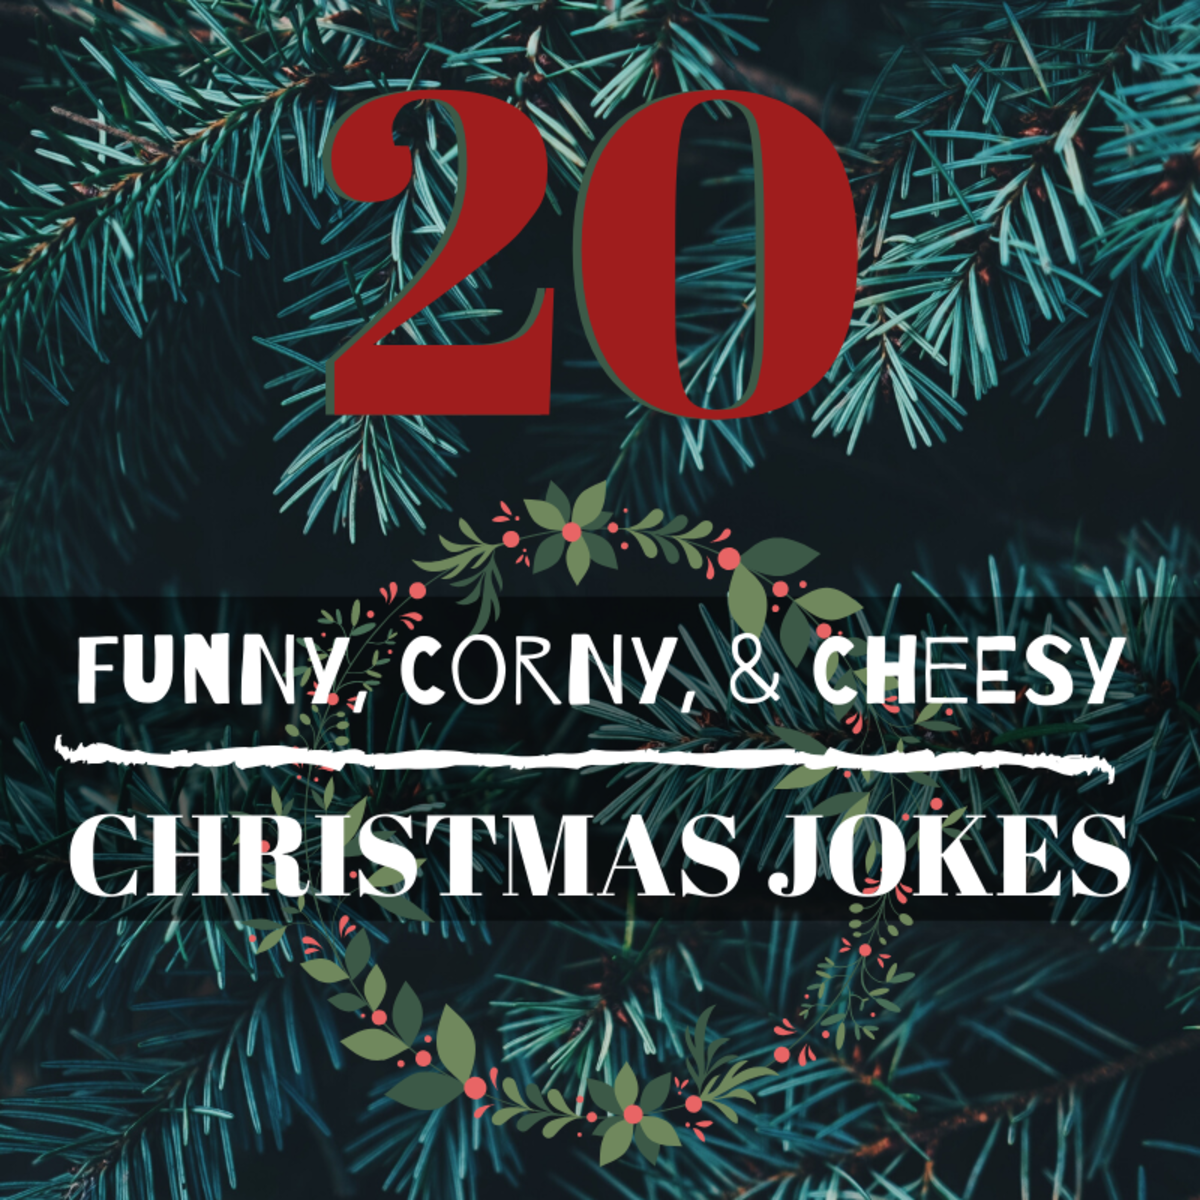 These Christmas jokes are cringey, corny, cheesy, and maybe . . . just maybe . . . a little bit funny.